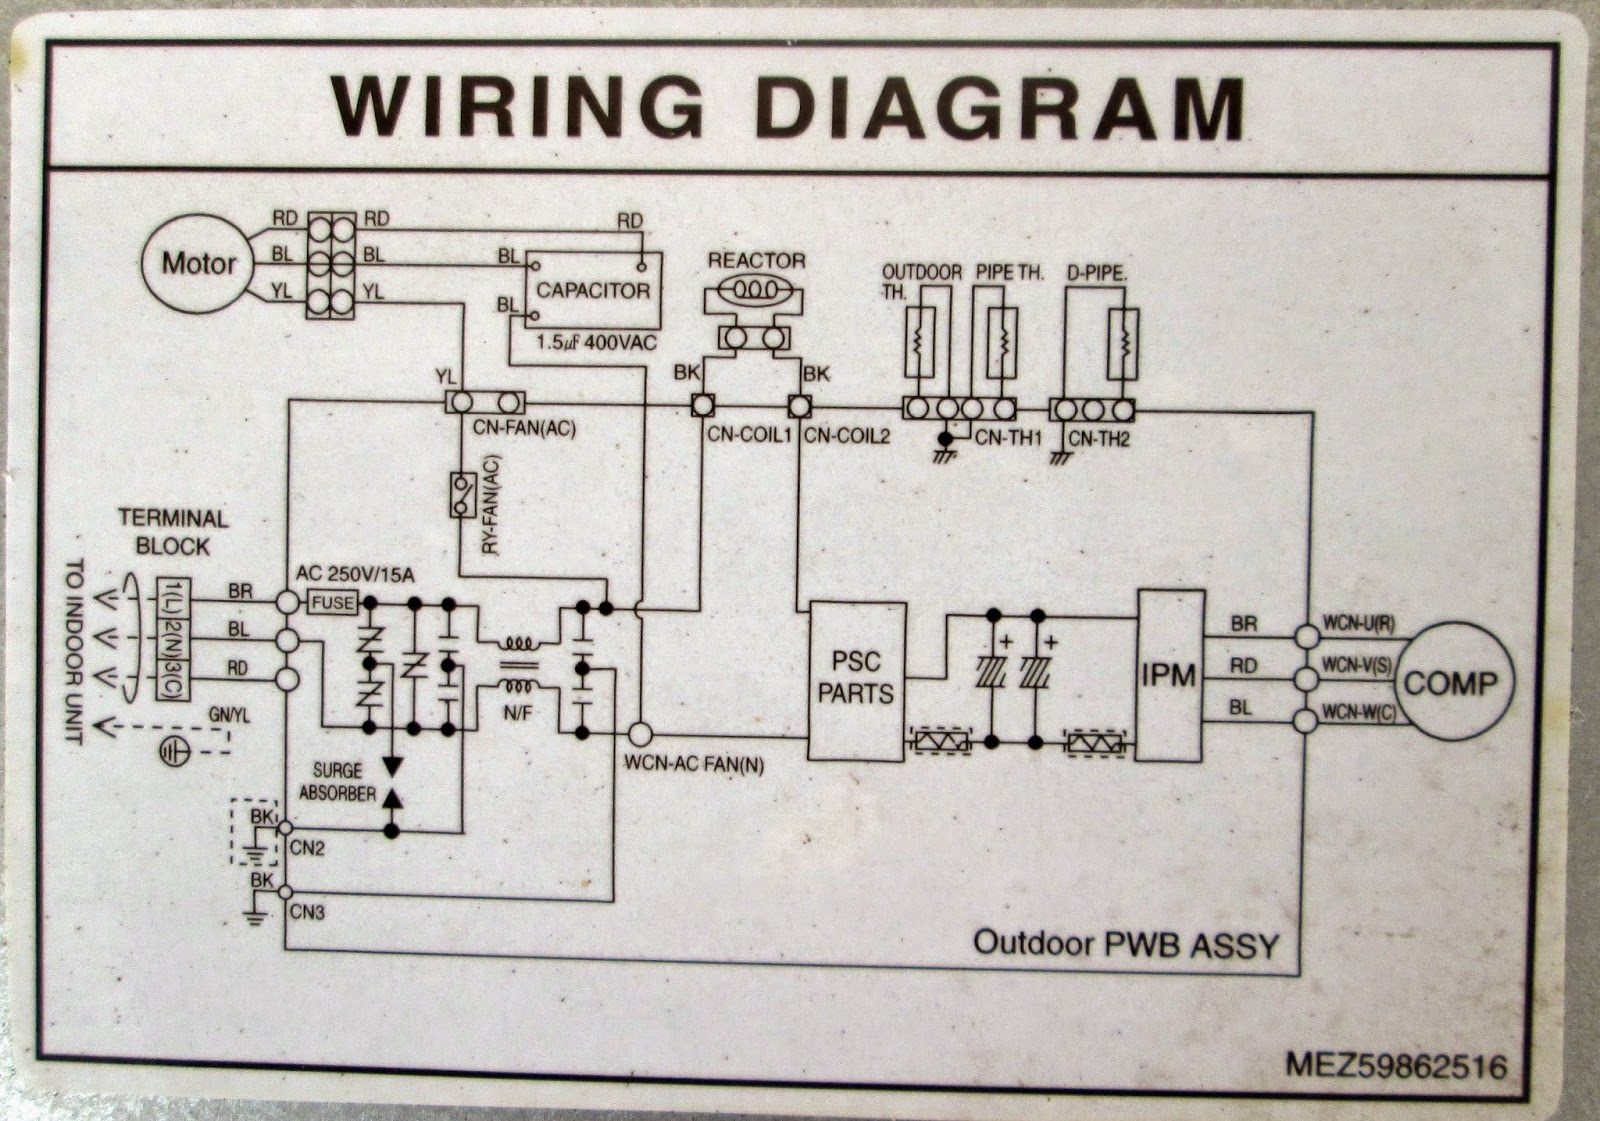 central air conditioner wiring schematic all wiring diagram Water Softener Wiring Schematic